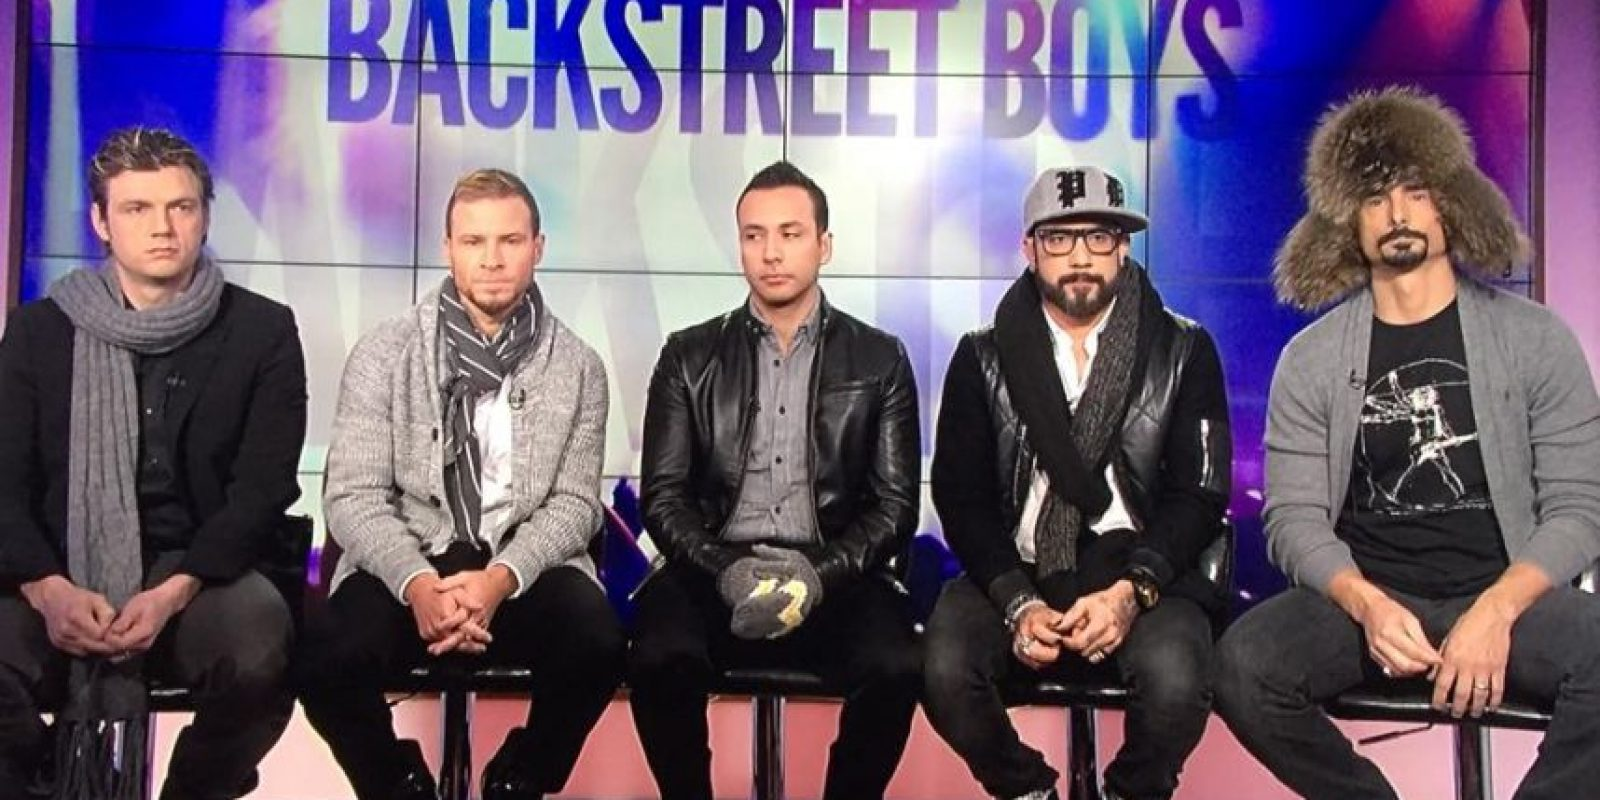 Foto: Facebook/Backstreet Boys